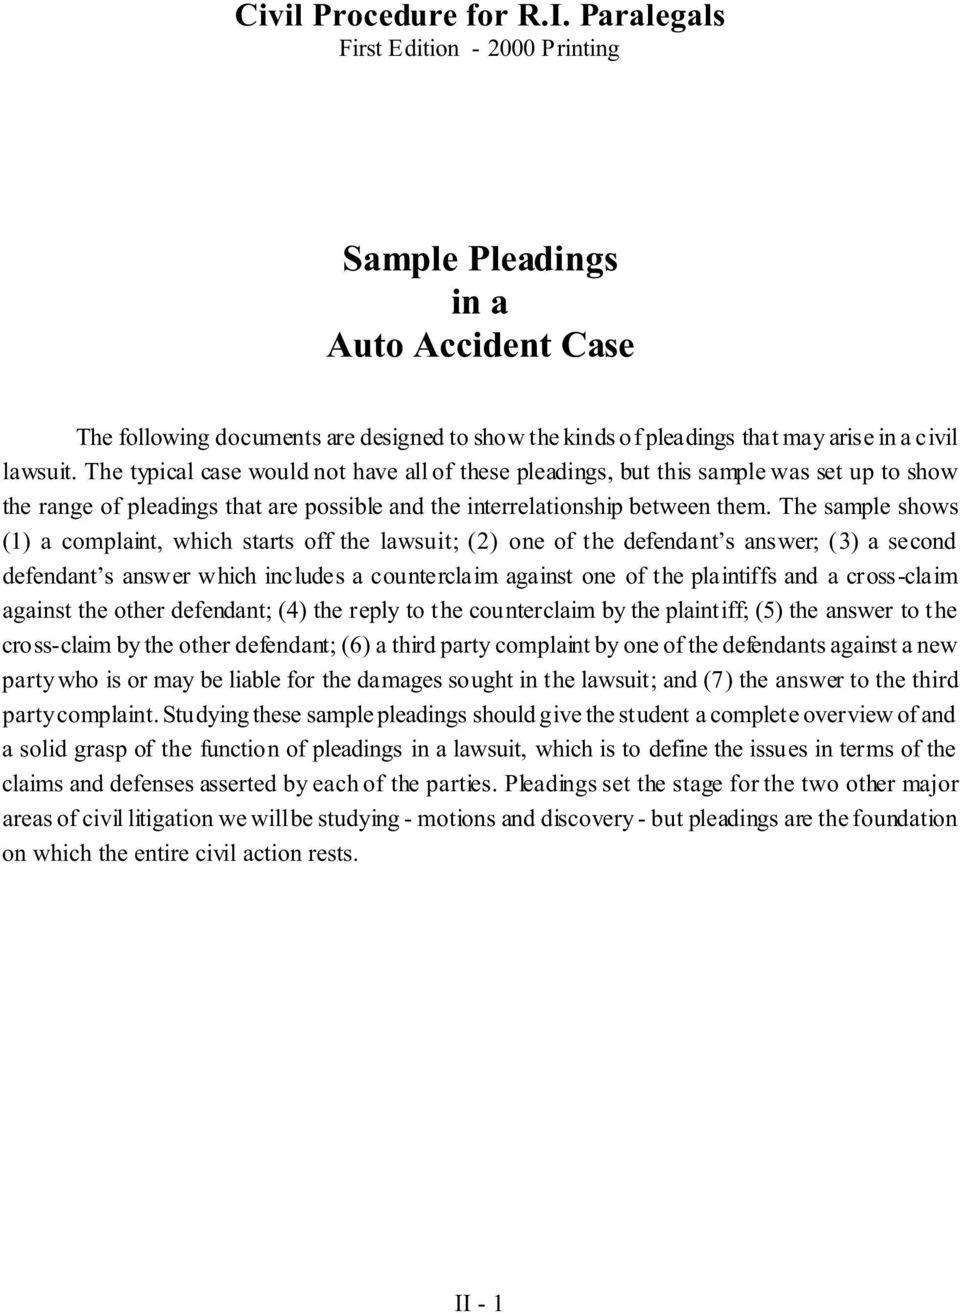 The typical case would not have all of these pleadings, but this sample was set up to show the range of pleadings that are possible and the interrelationship between them.